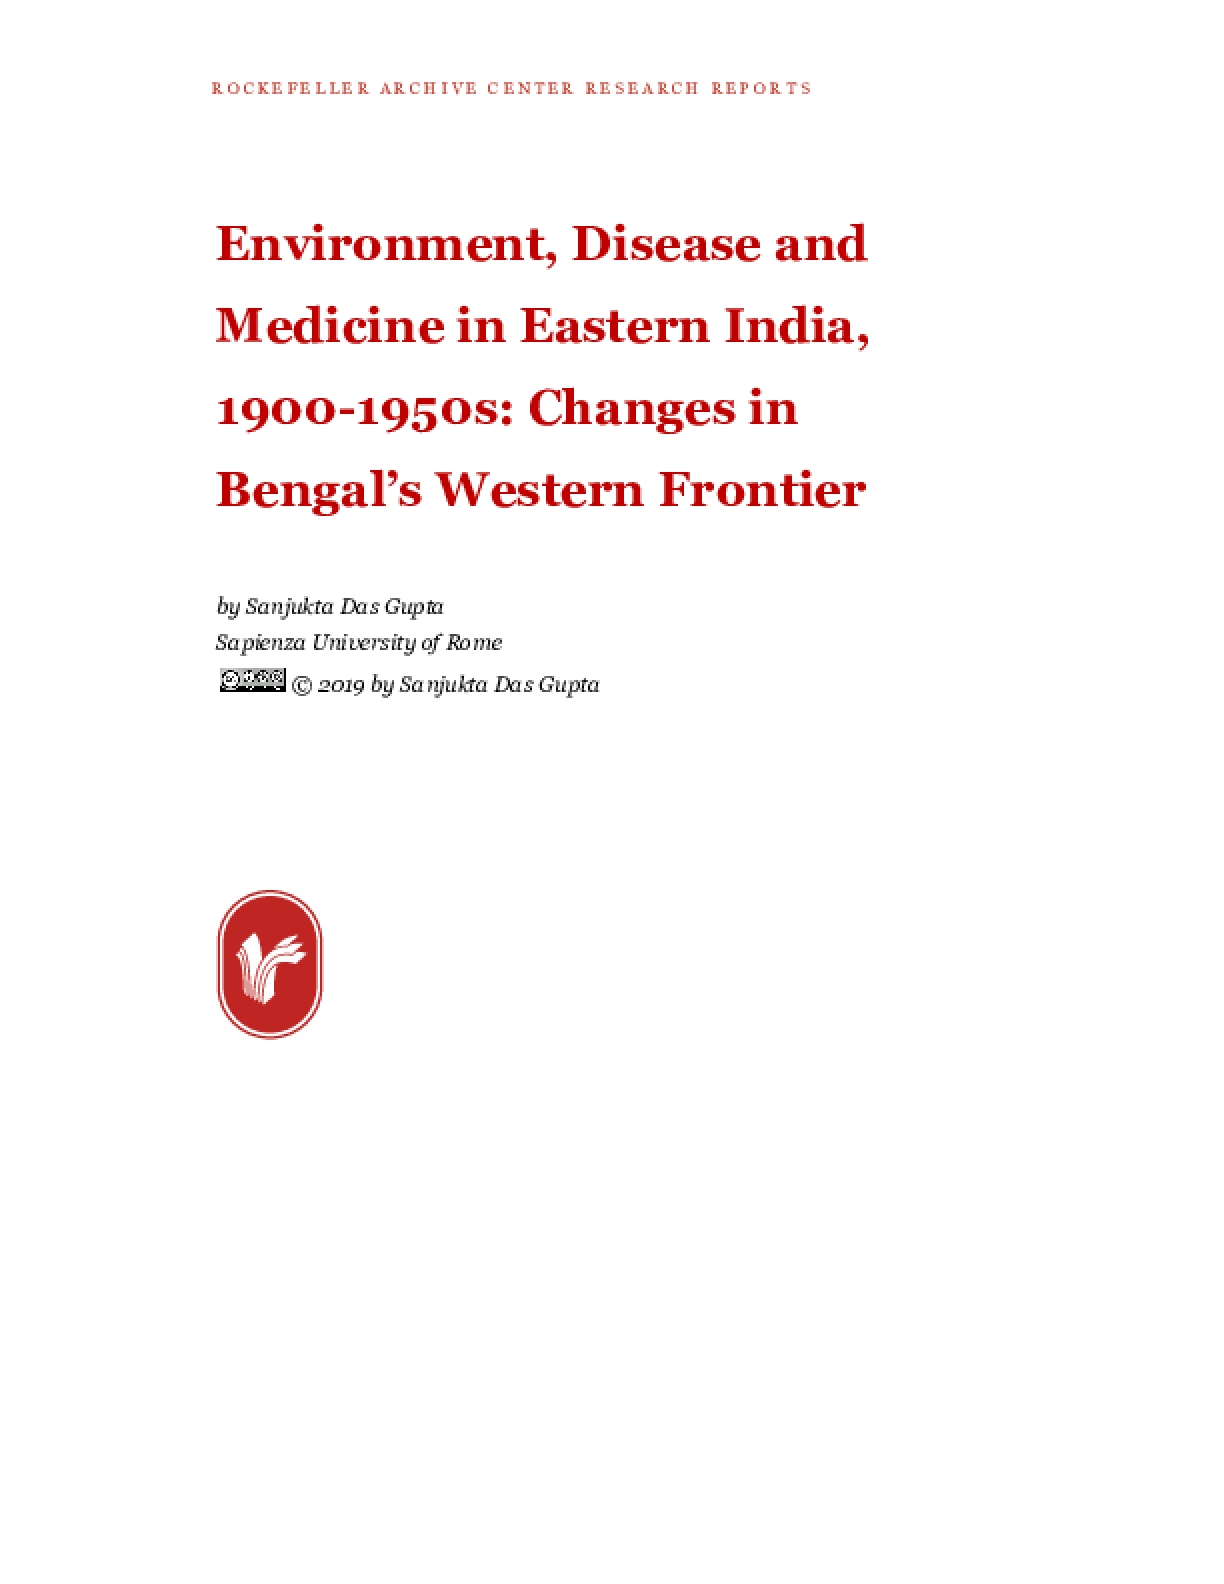 Environment, Disease and Medicine in Eastern India, 1900-1950s: Changes in Bengal's Western Frontier